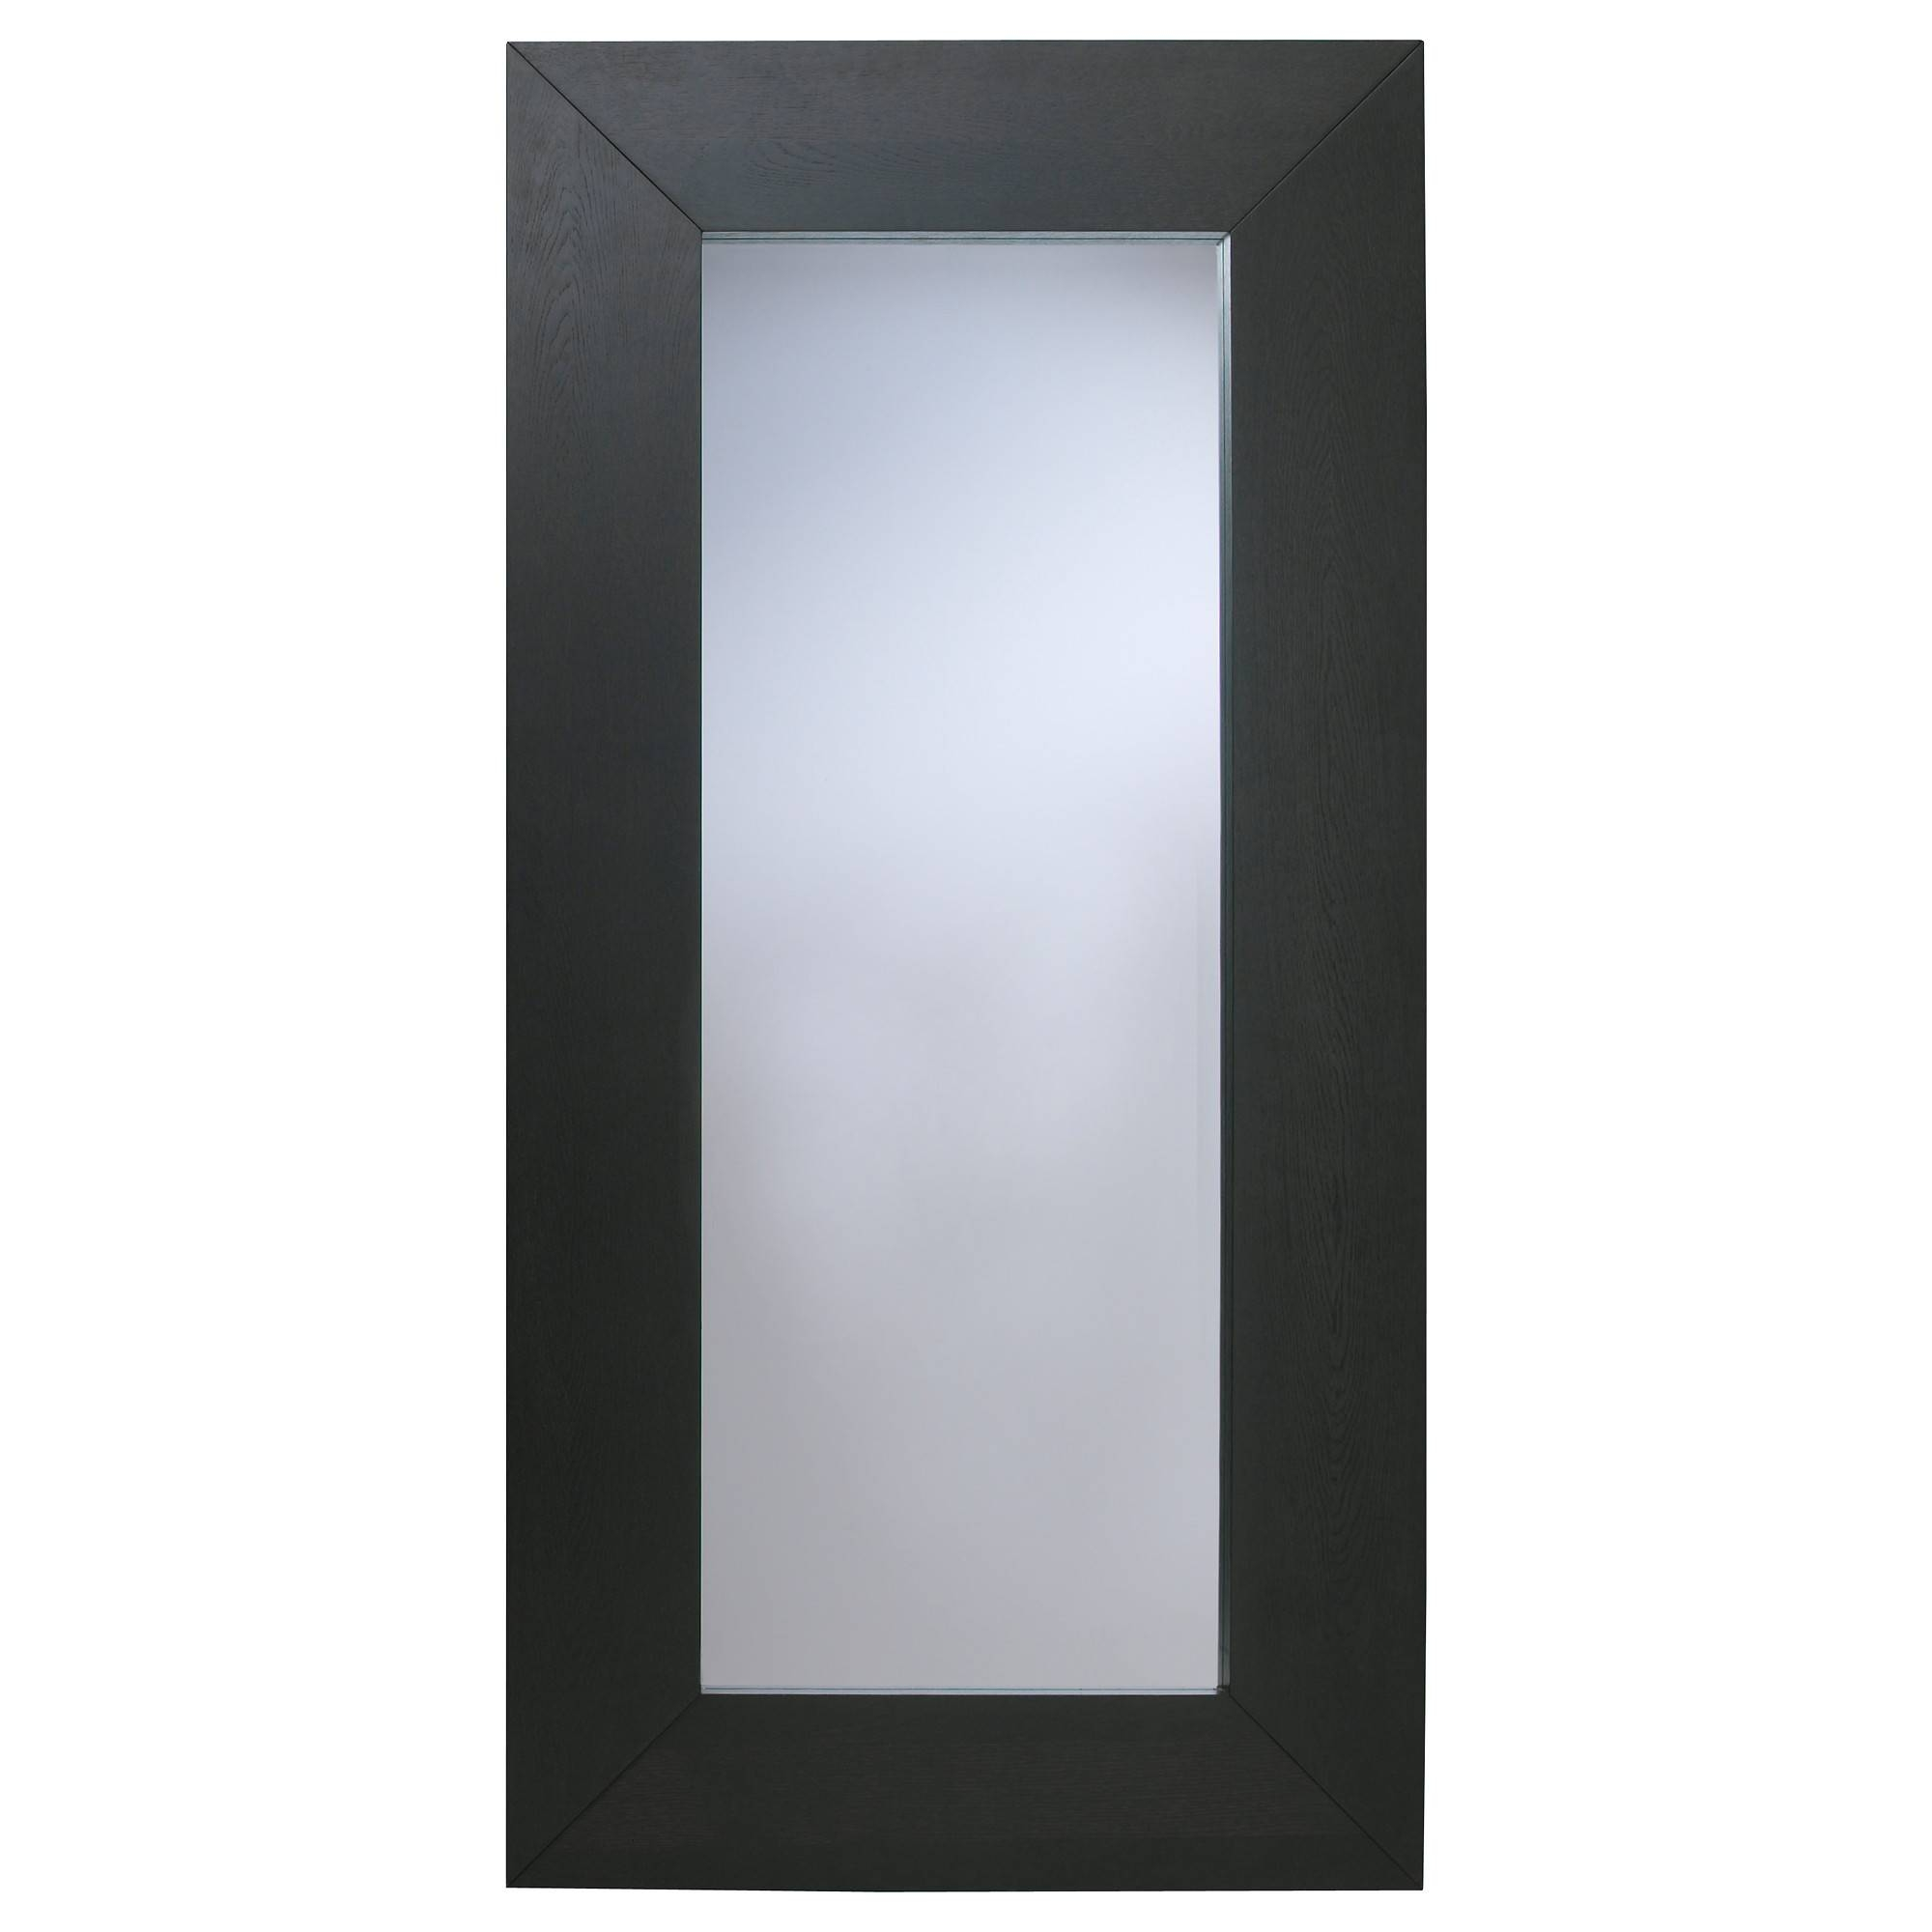 Mirrors - Free Standing Mirrors - Ikea for Free Standing Black Mirrors (Image 14 of 15)